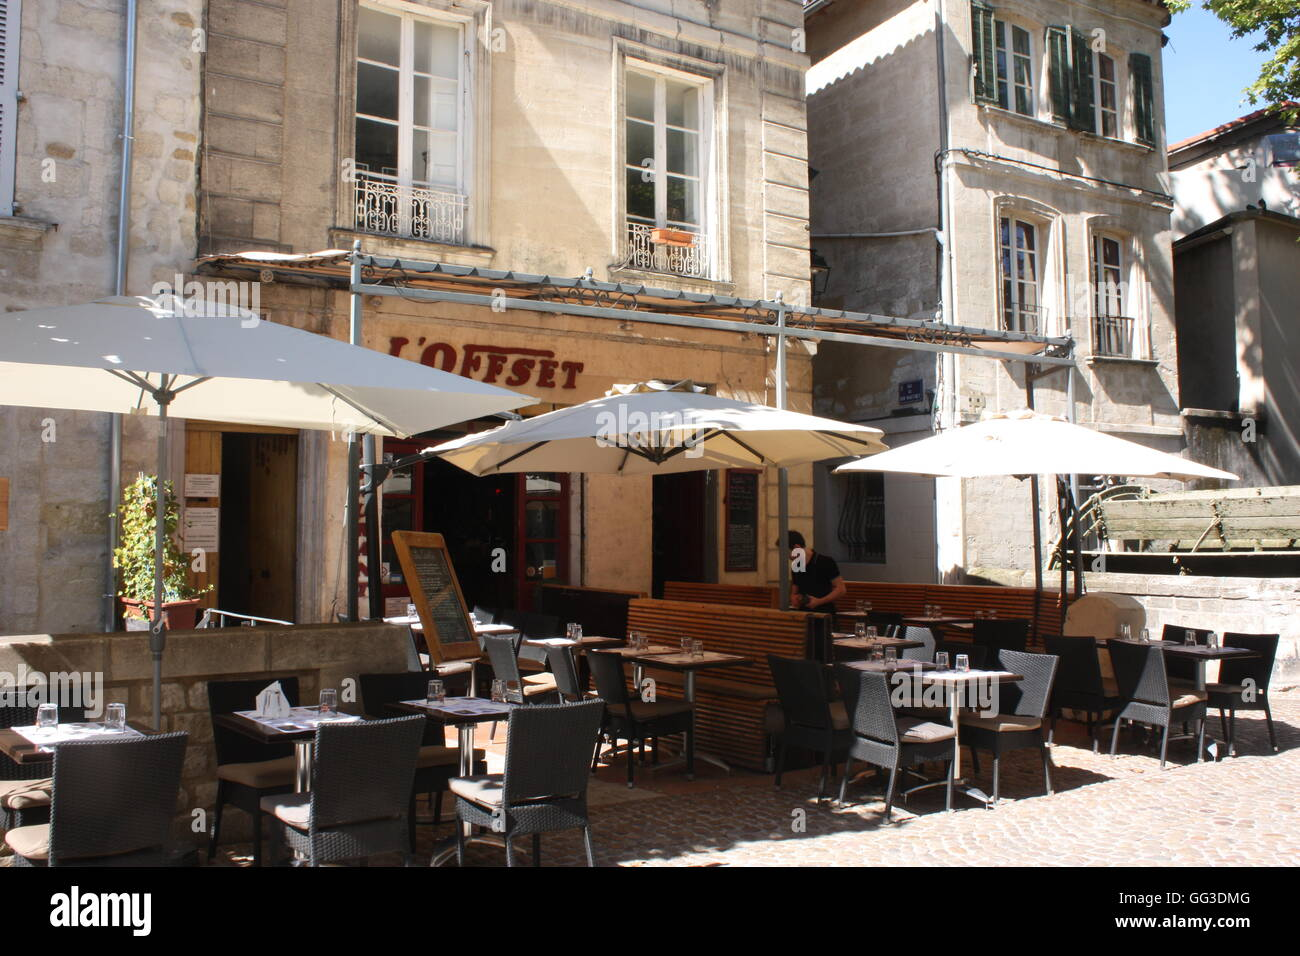 rue des teinturiers avignon the restaurant l 39 offset near the water stock photo 113173328 alamy. Black Bedroom Furniture Sets. Home Design Ideas